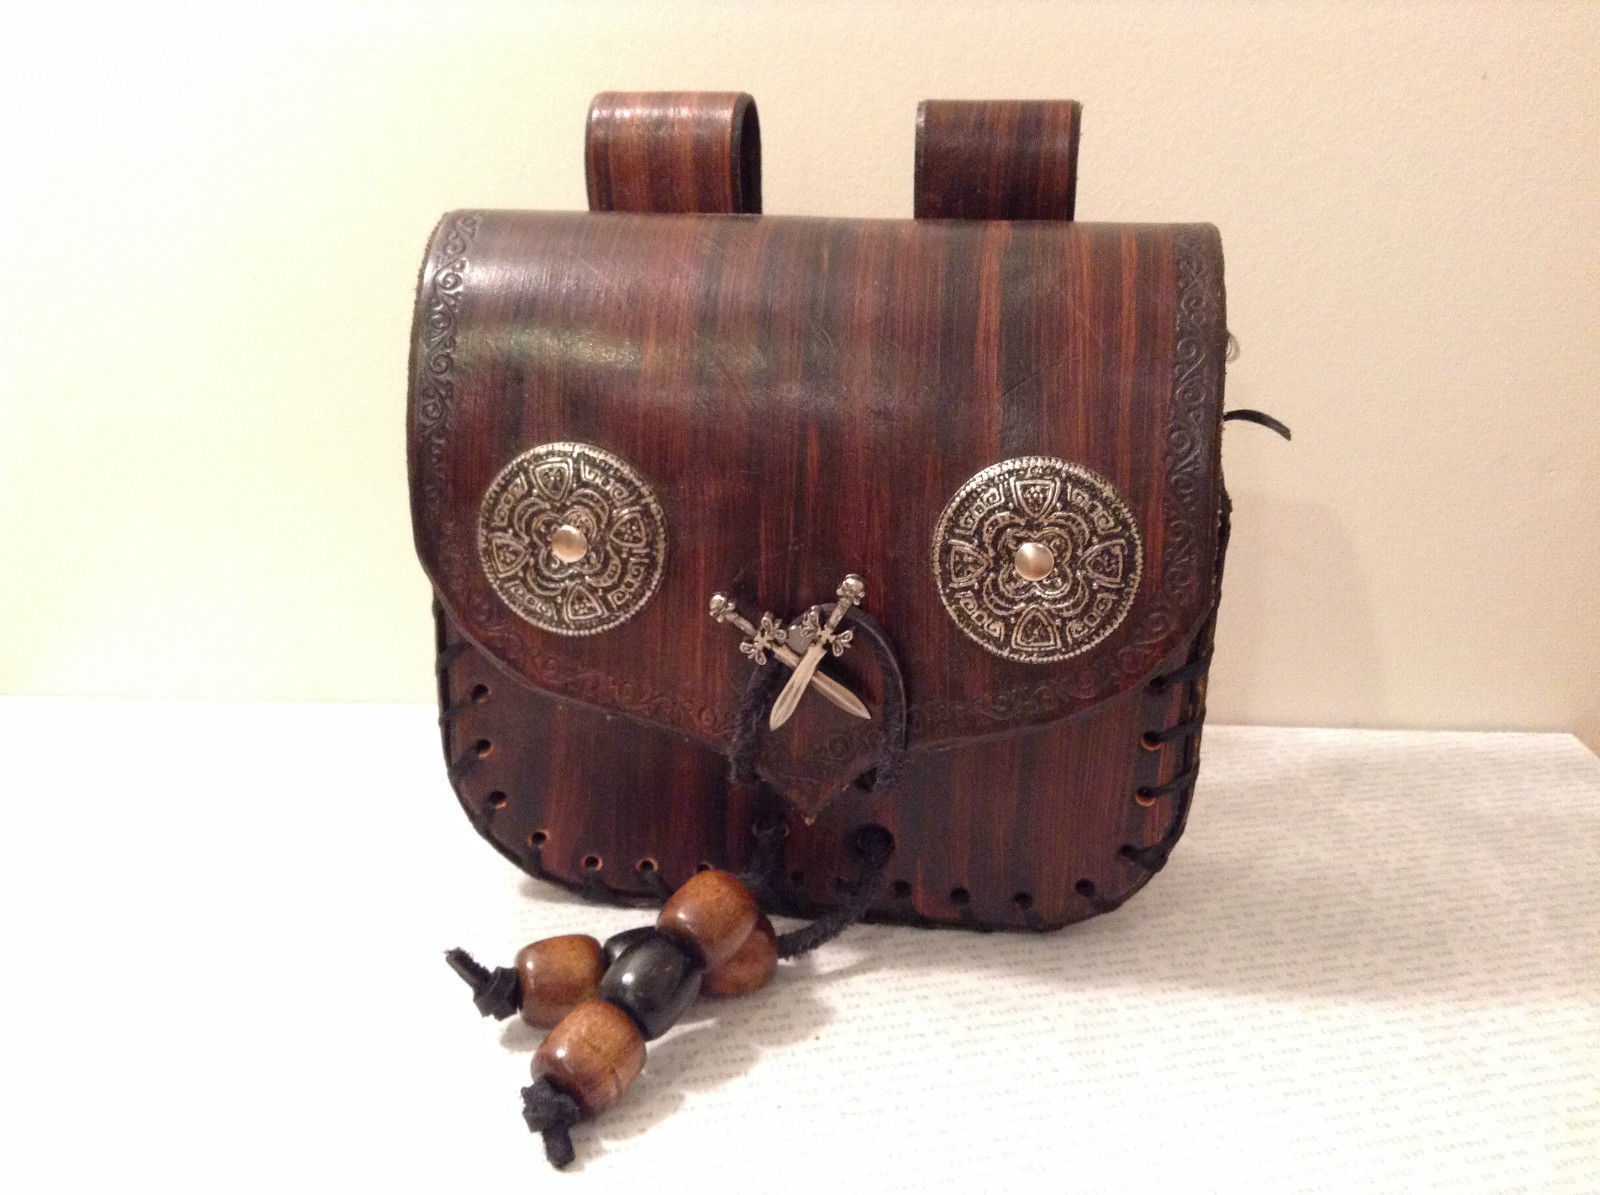 Unique Leather Belt Bag Purse Wooden Beads Swords Steam Punk